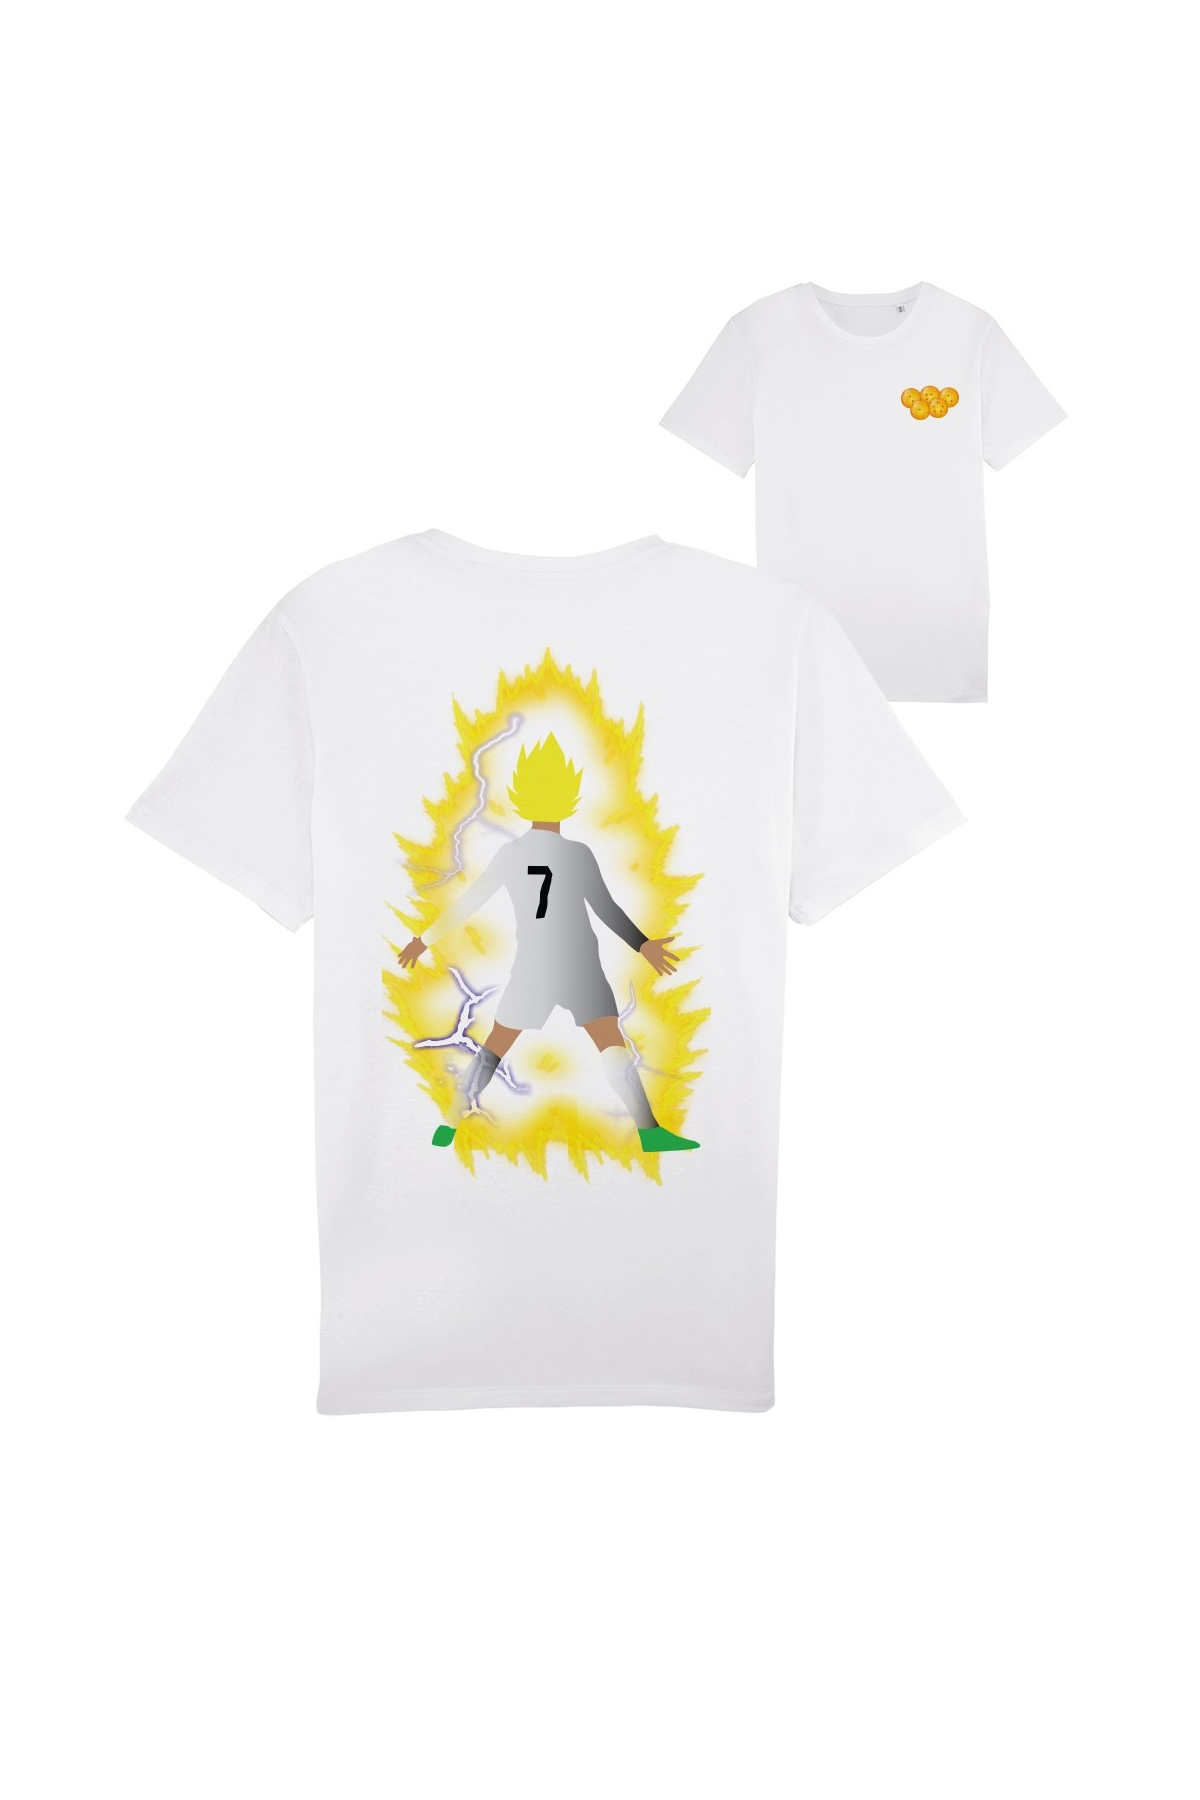 T-shirt Cristiano Ronaldo Dragon Ball Z